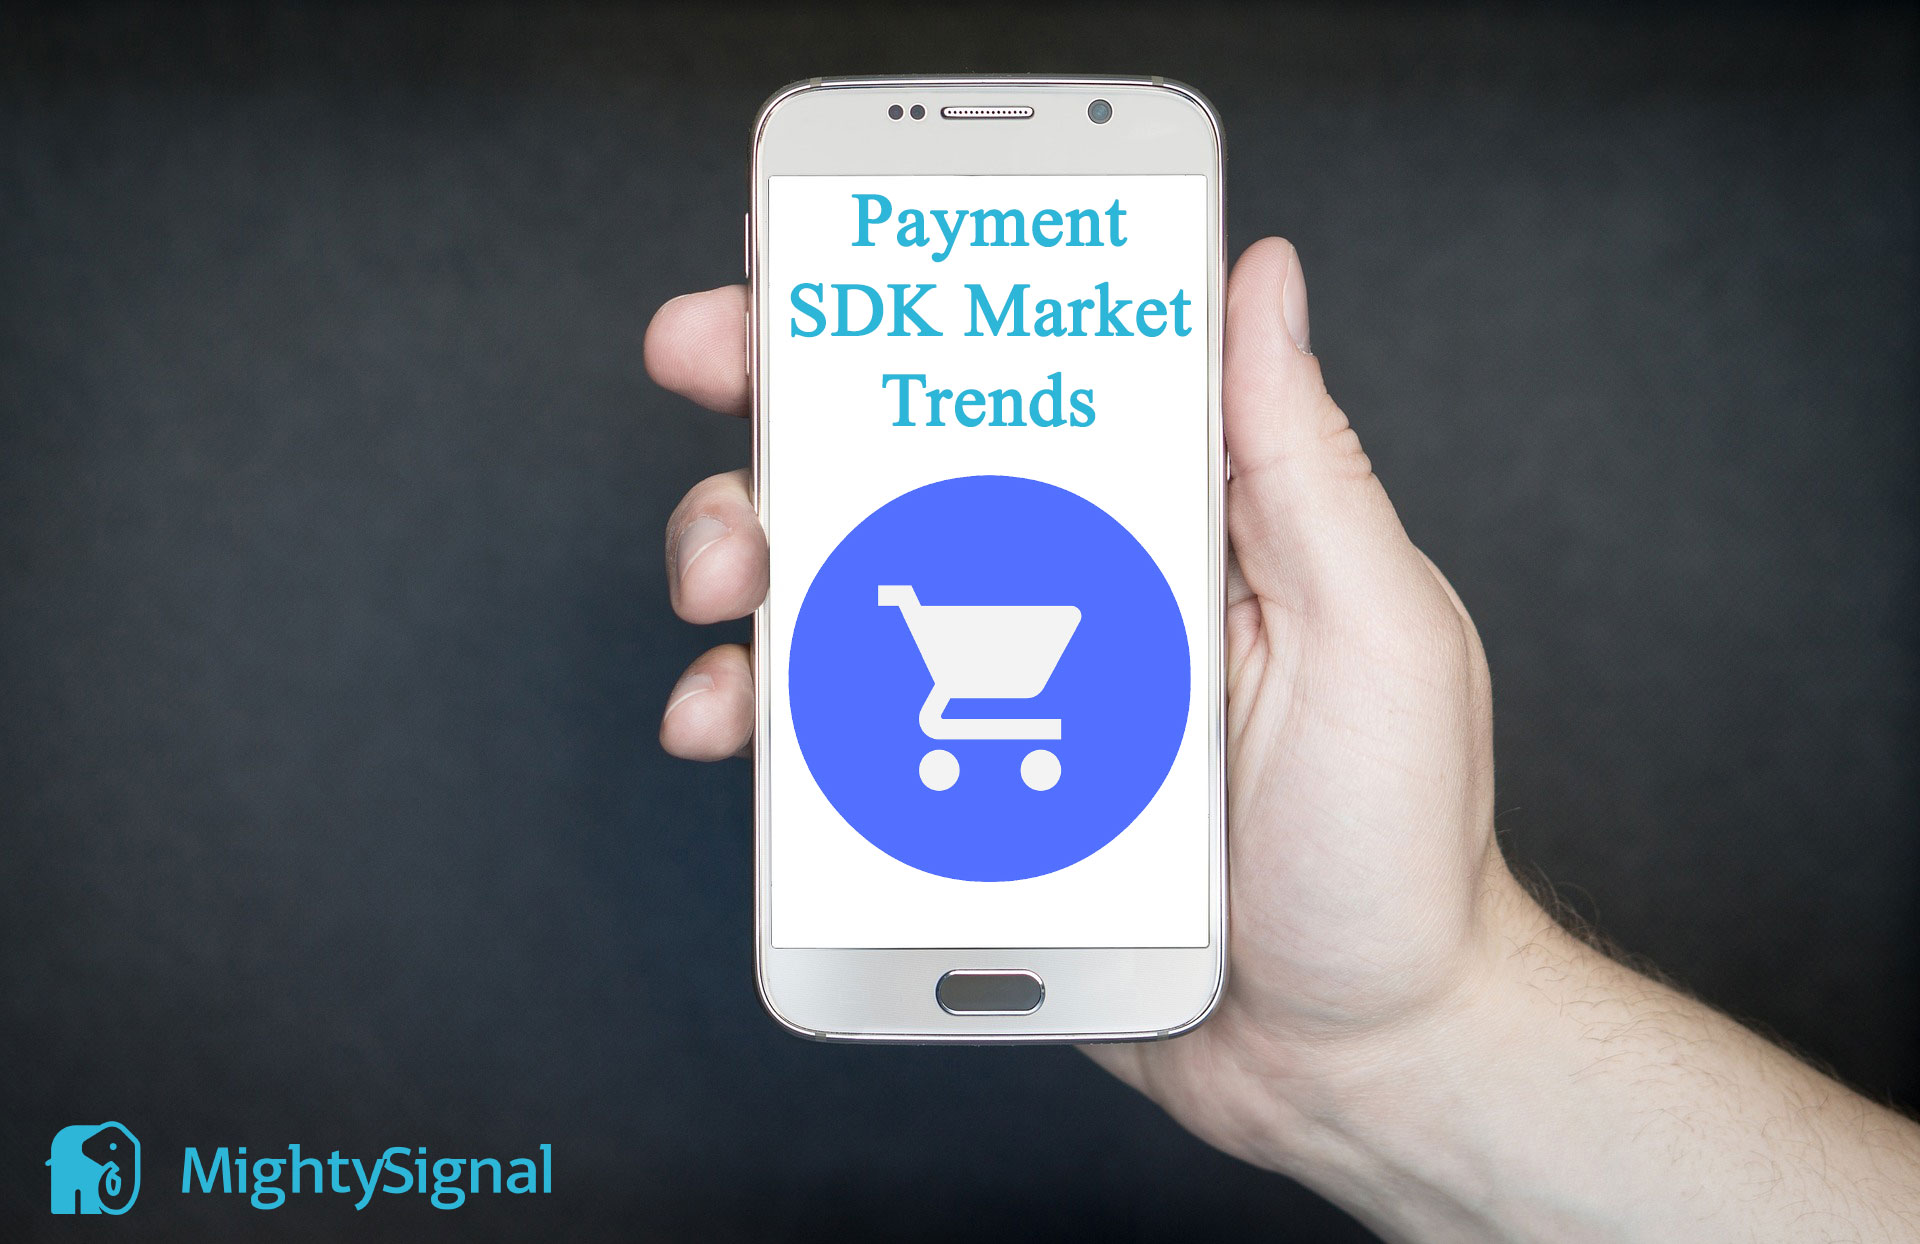 Top Mobile Payment SDKs for 2019